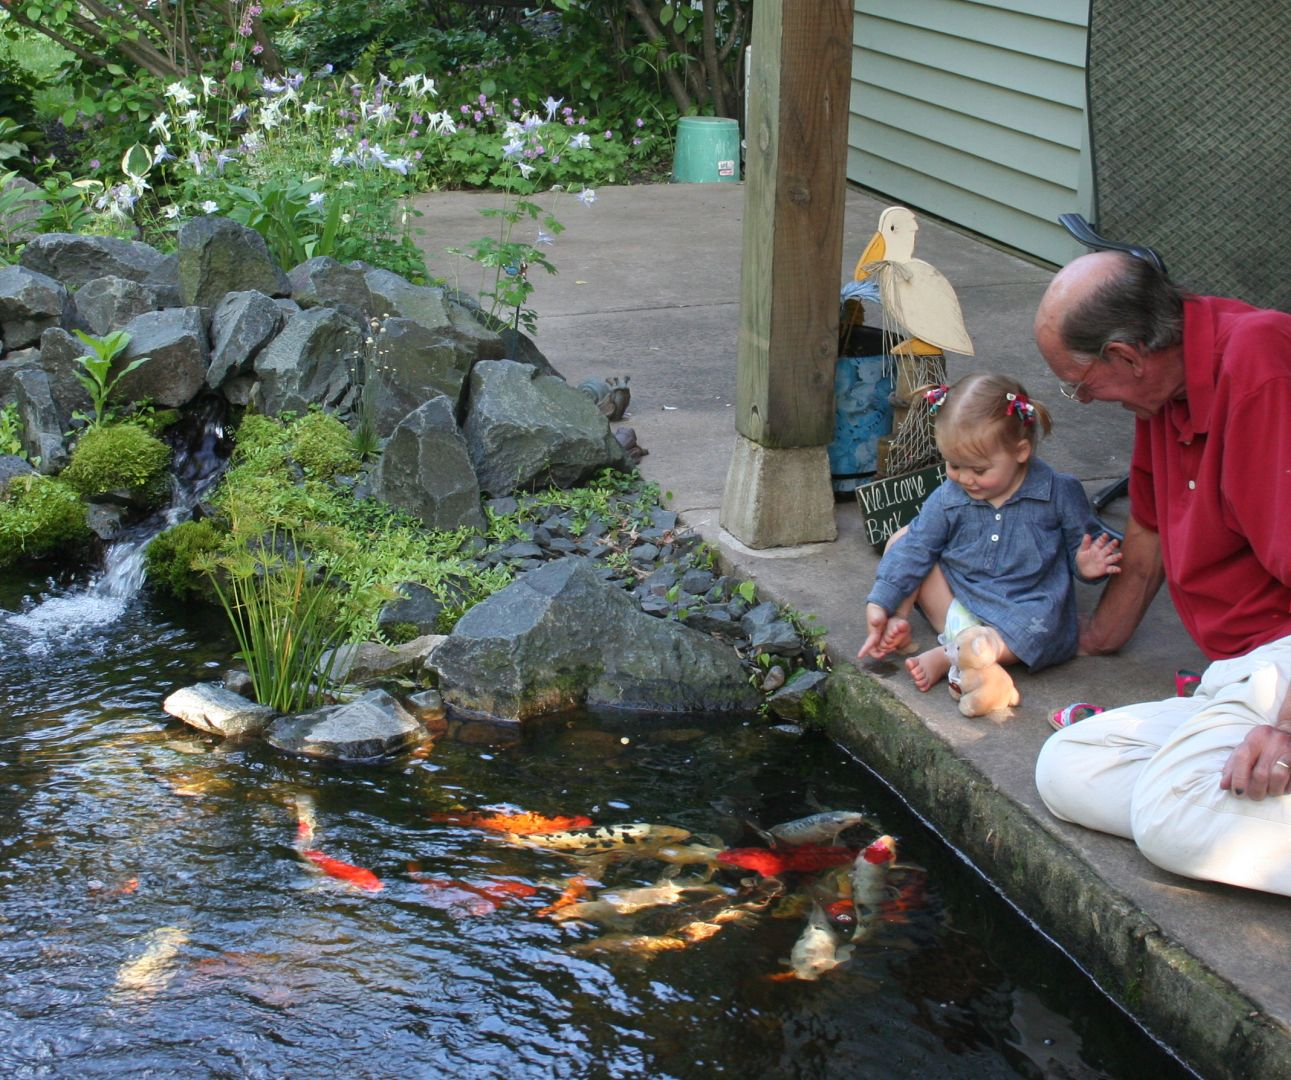 man and child by pond with koi fish